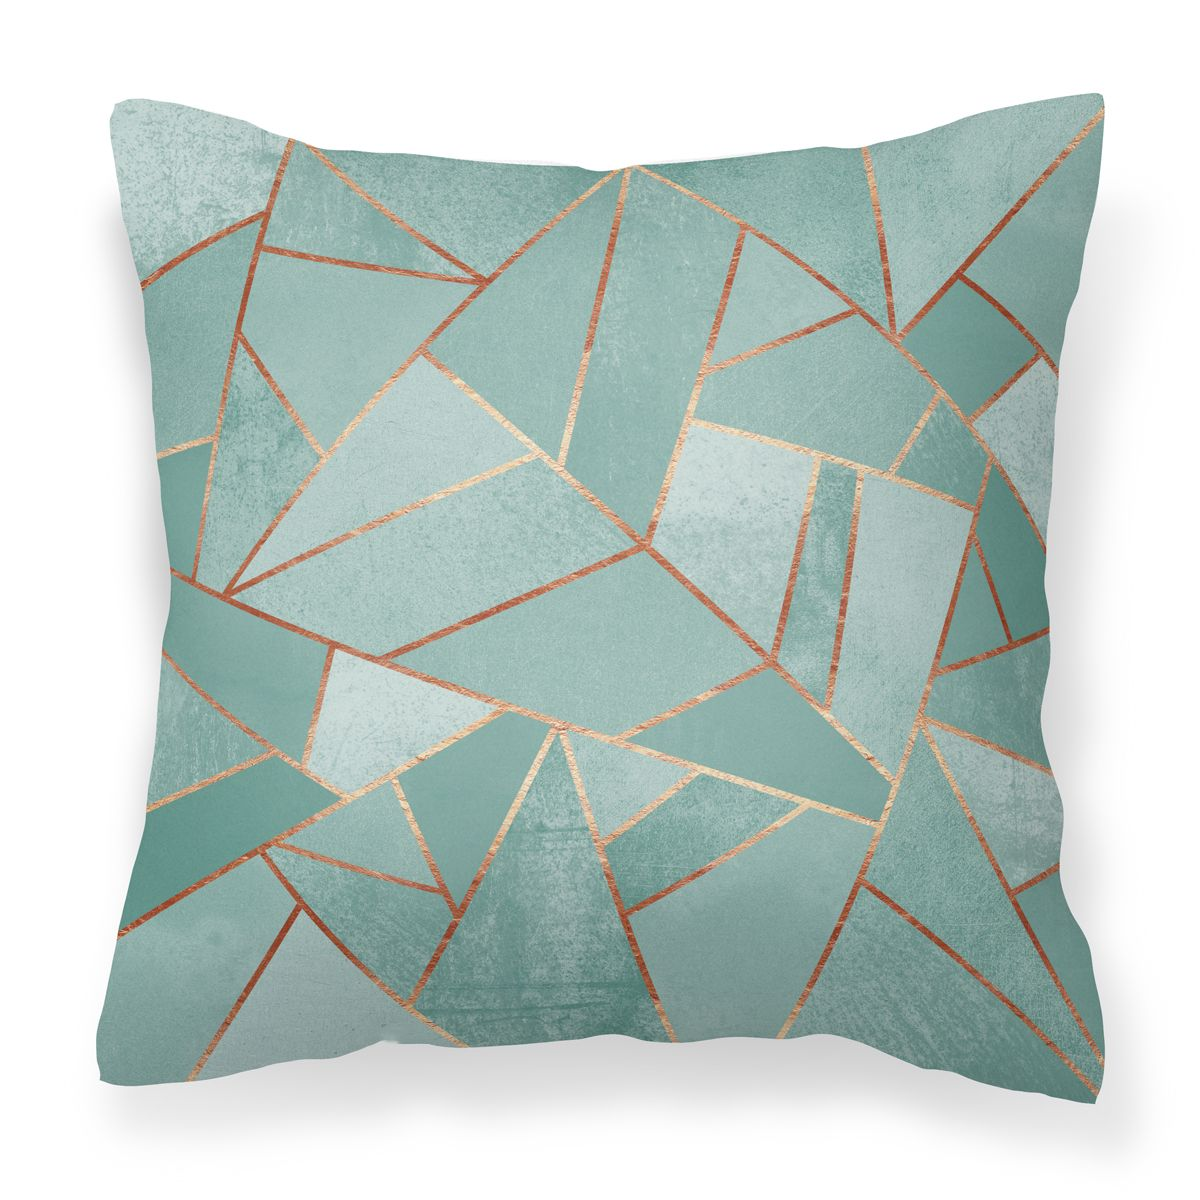 This plush vegan suede cushion cover features the artwork duck egg